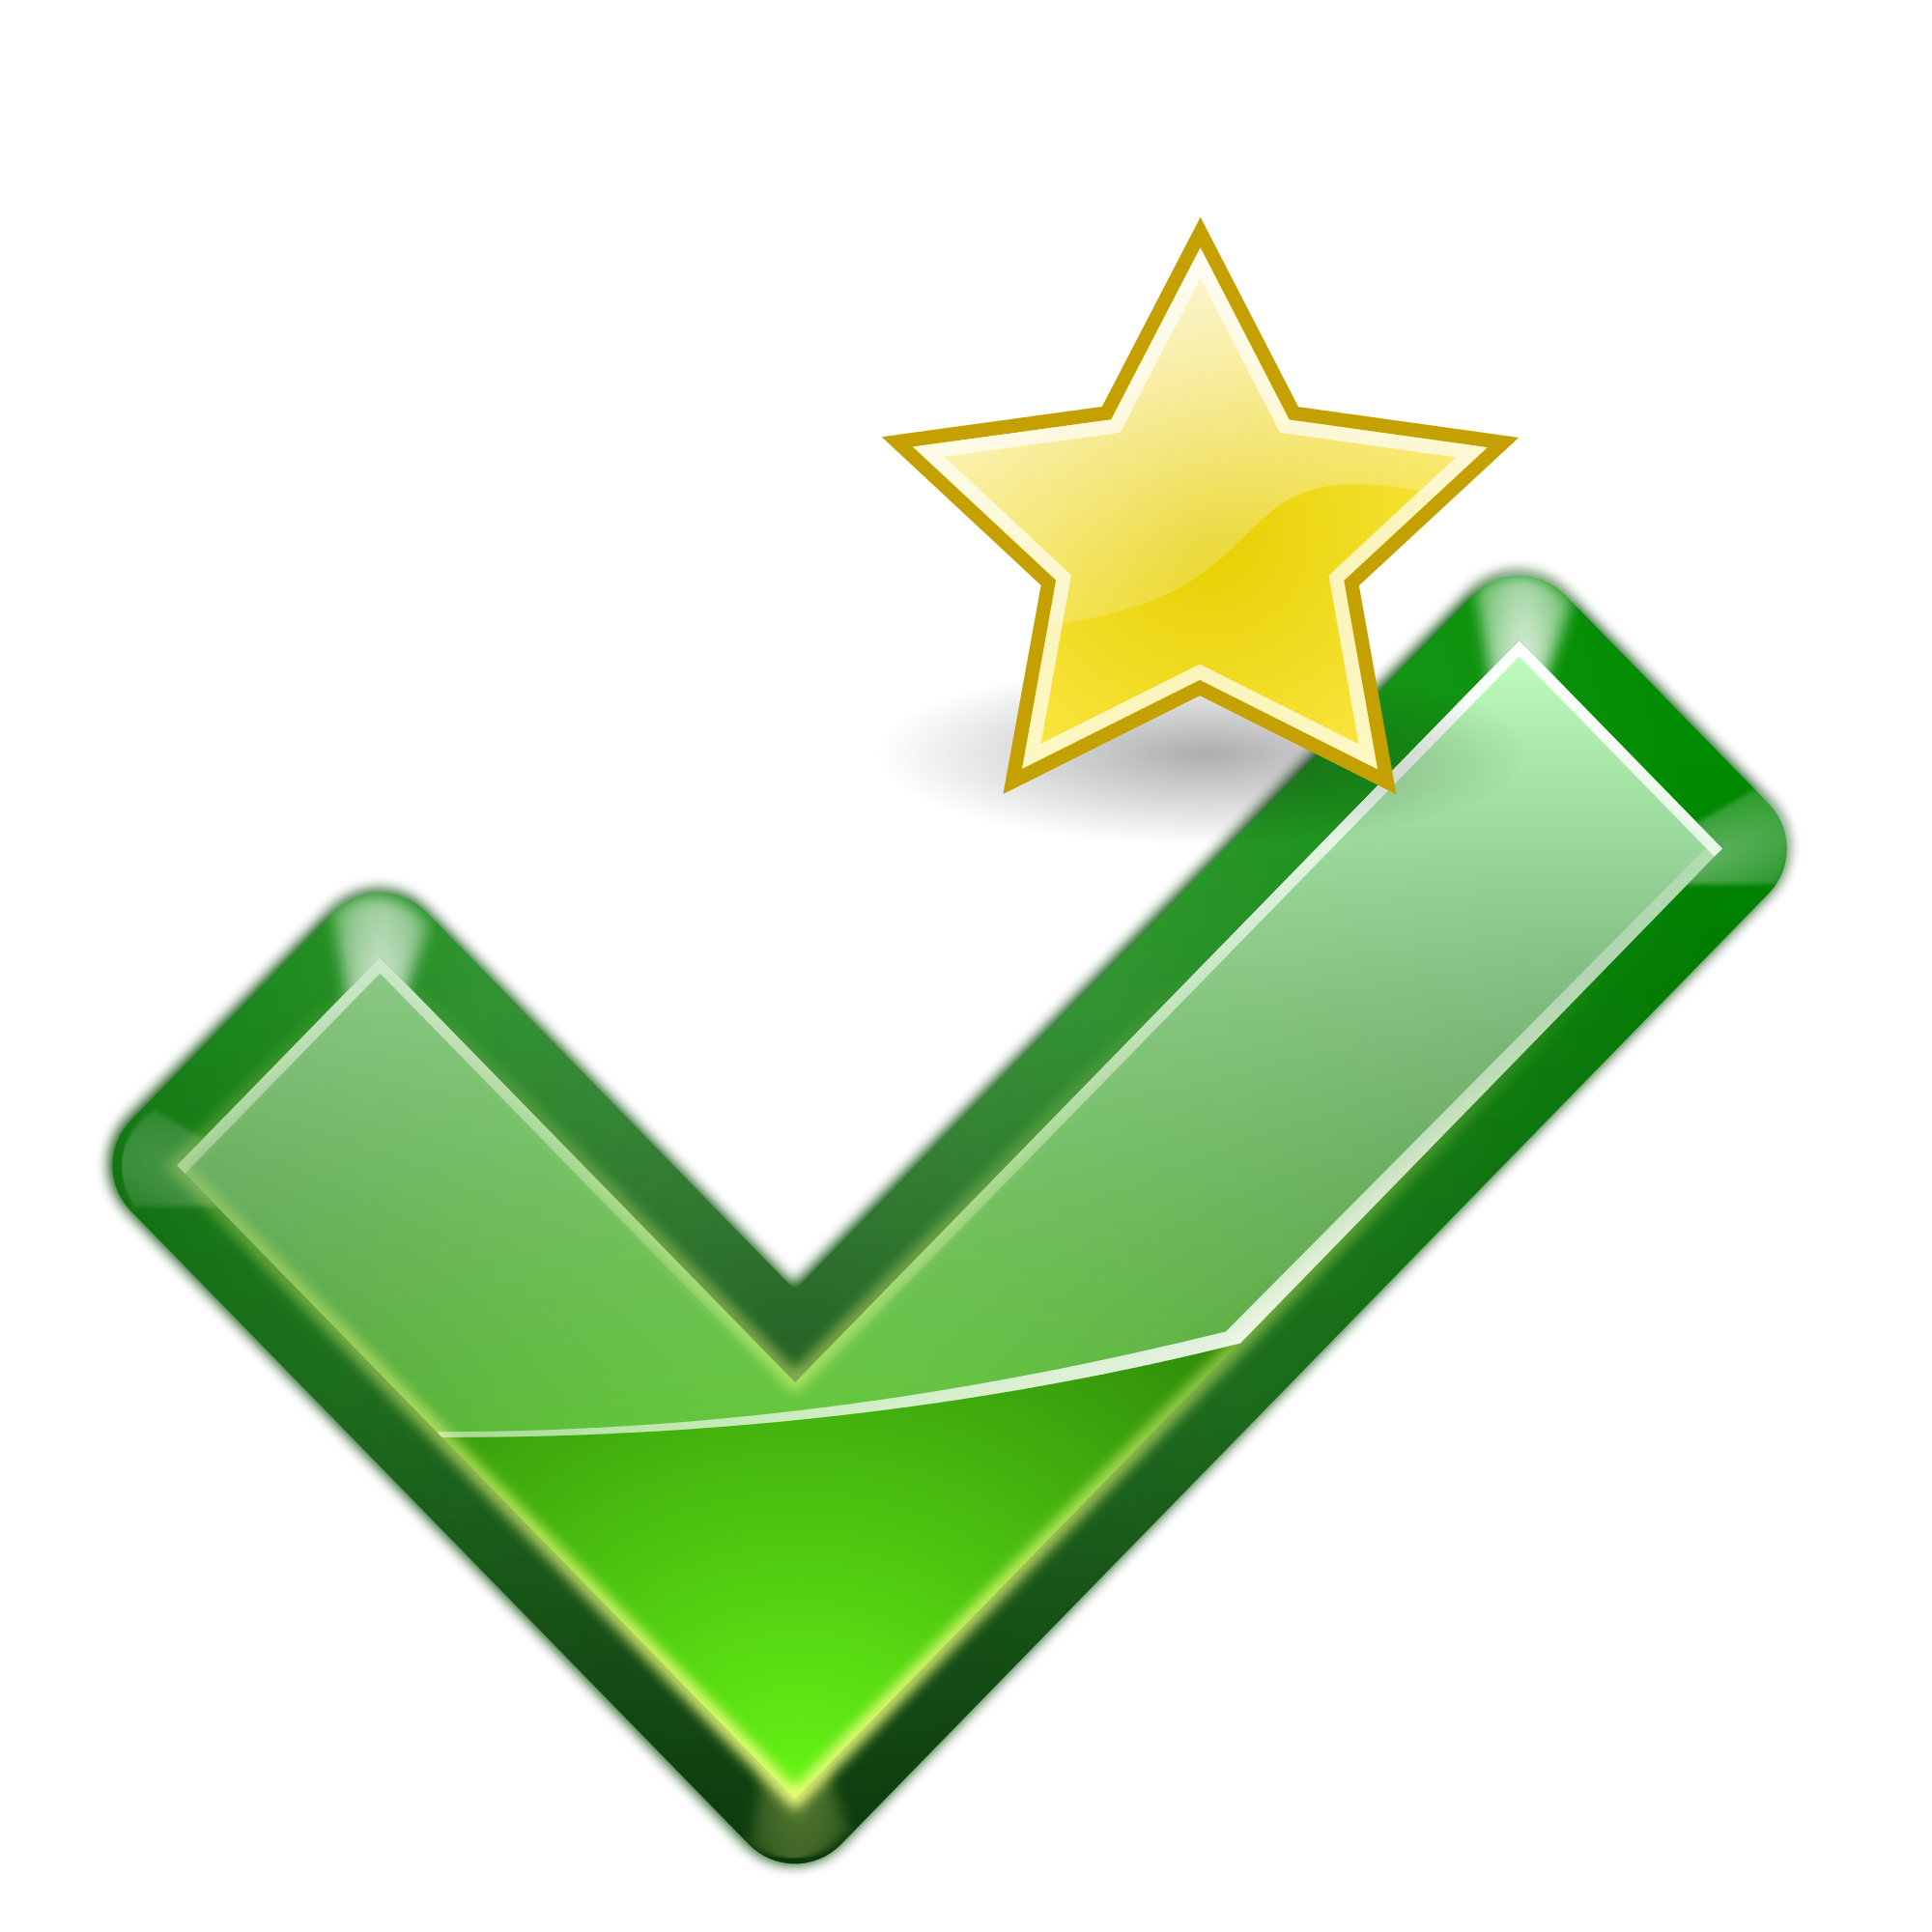 Small check mark png. File starred checkmark star